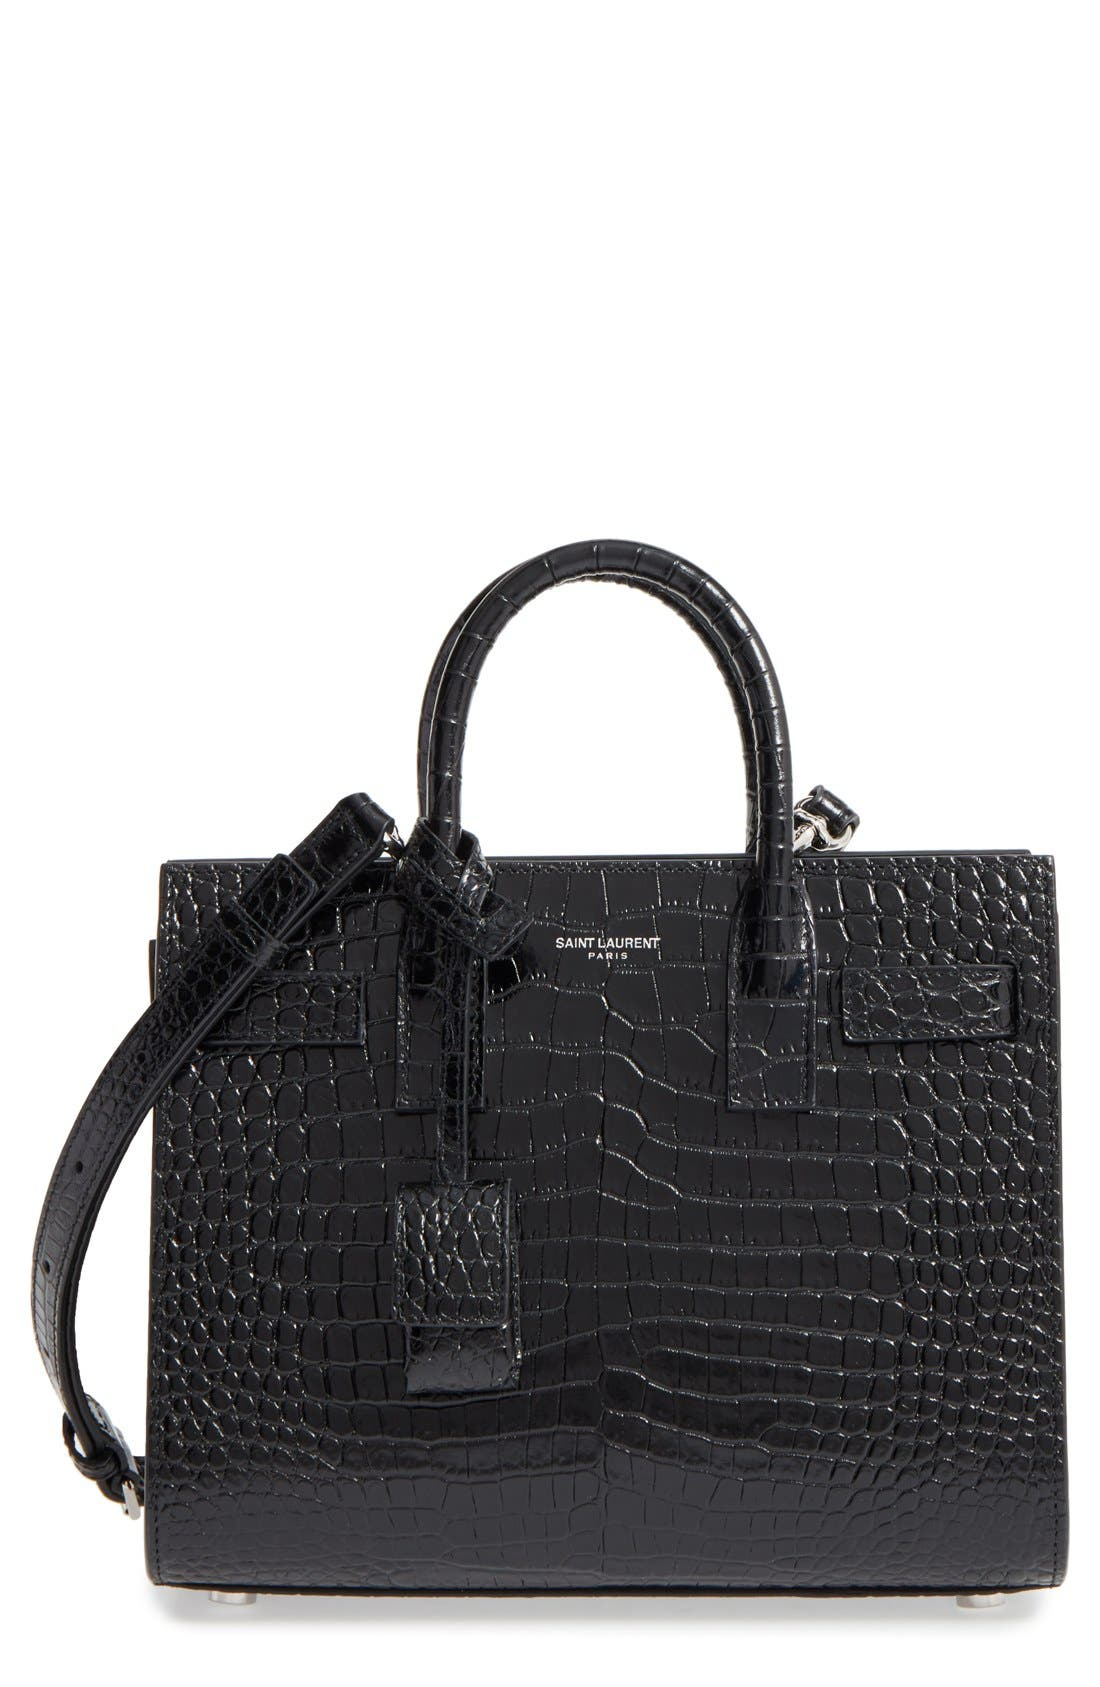 Alternate Image 1 Selected - Saint Laurent Nano Sac de Jour Croc Embossed Leather Tote